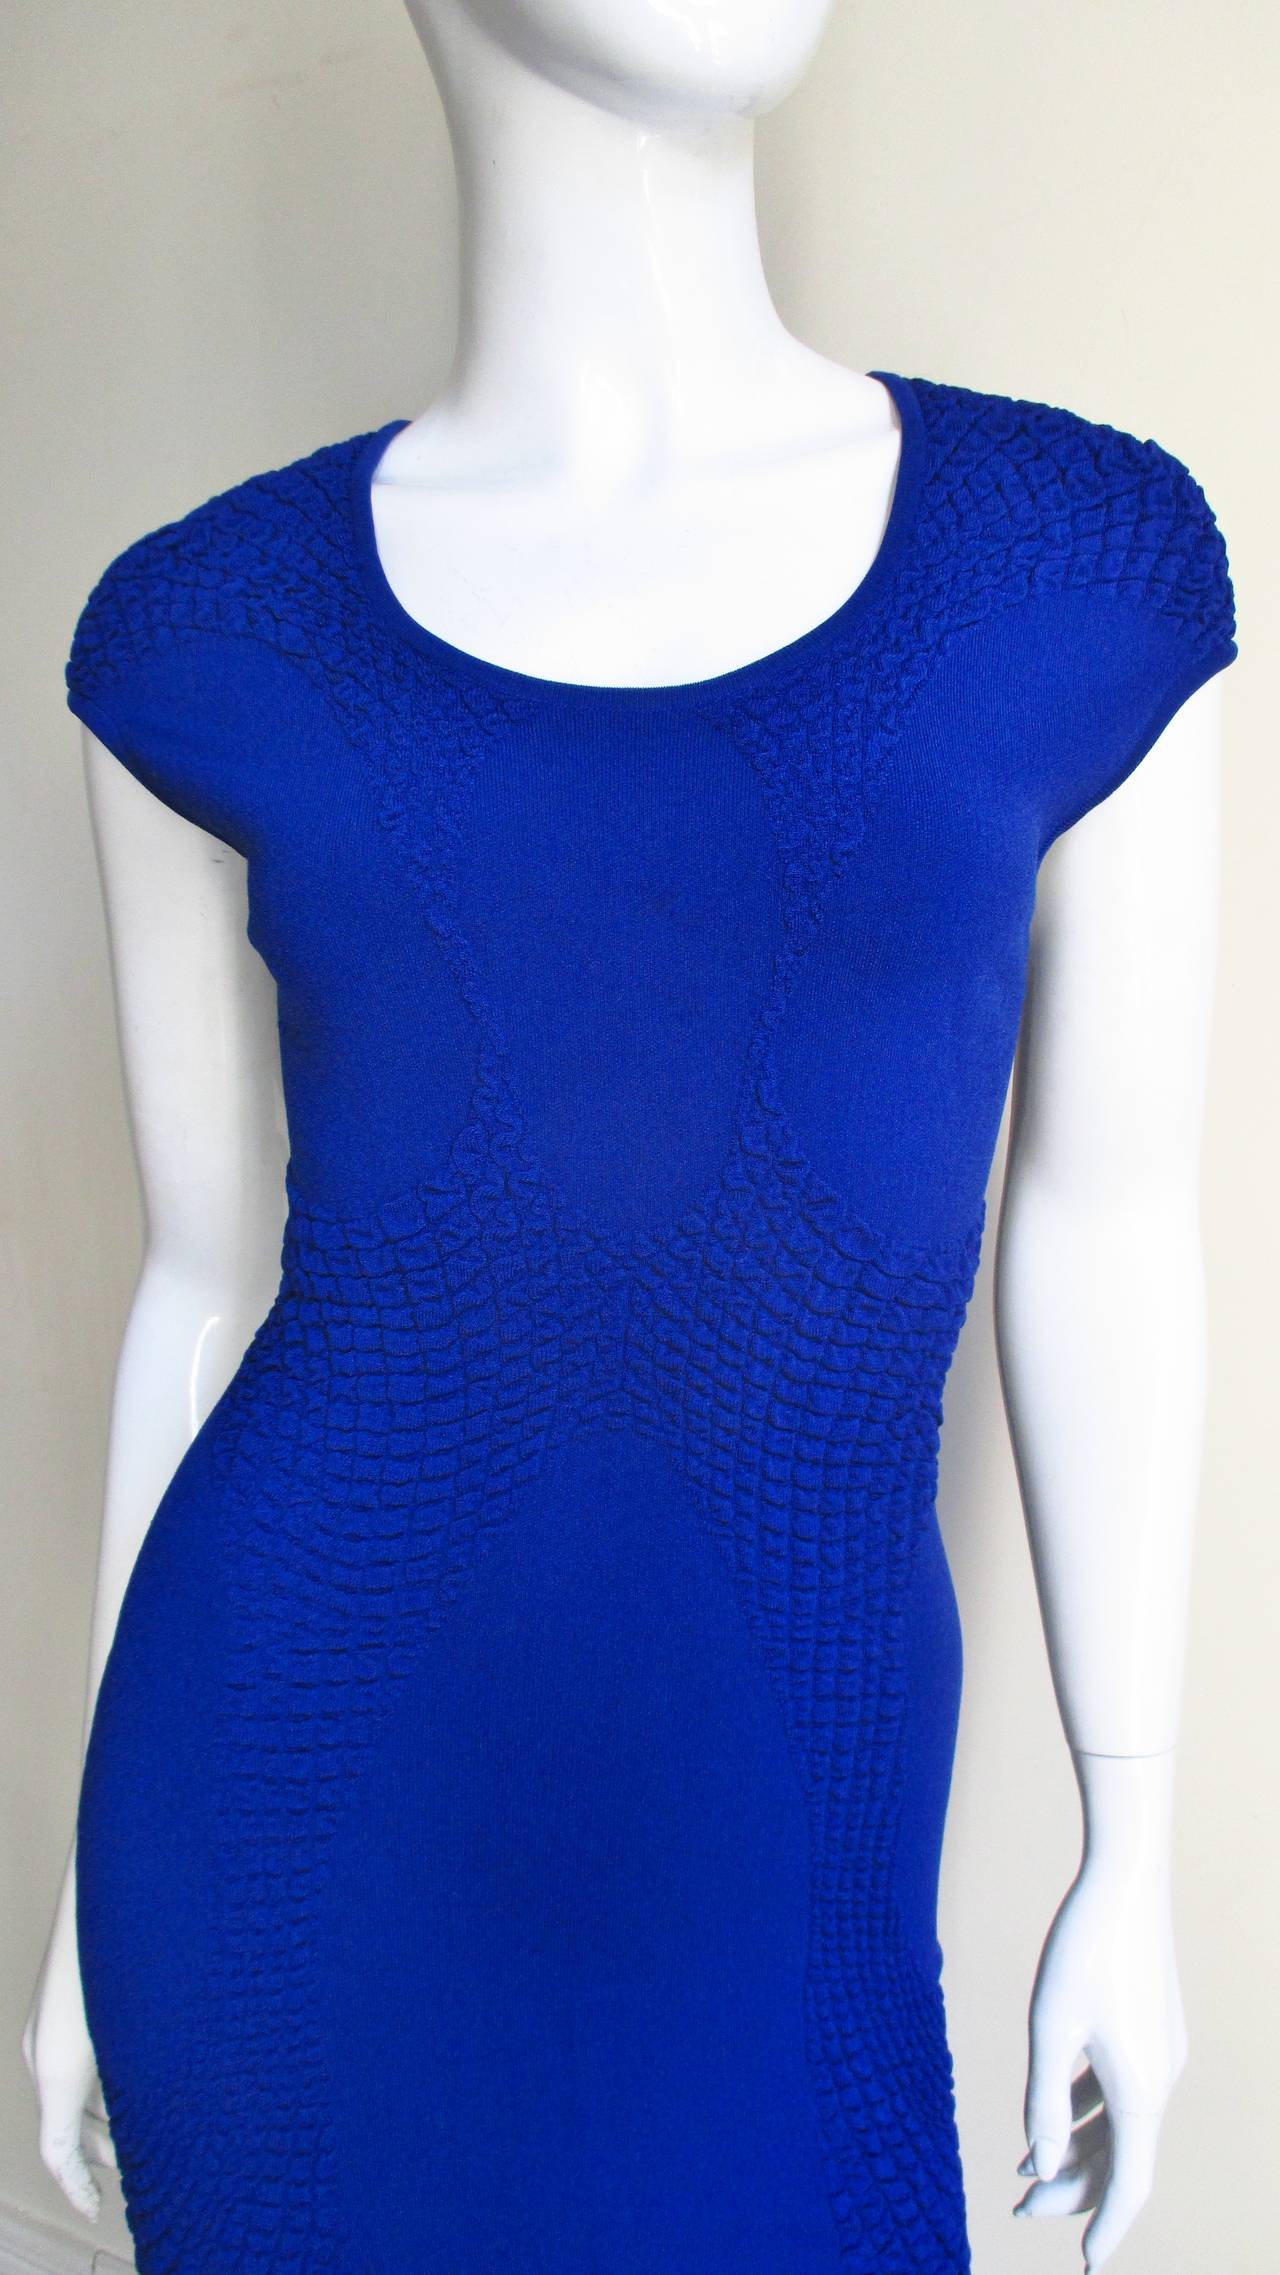 A vibrant blue knit bodycon dress from Alexander McQueen. It is highlighted down the front and back with strategically placed figure enhancing subtle pebble textured knit detail in the same fabric. It has a crew neckline and cap sleeves. There are